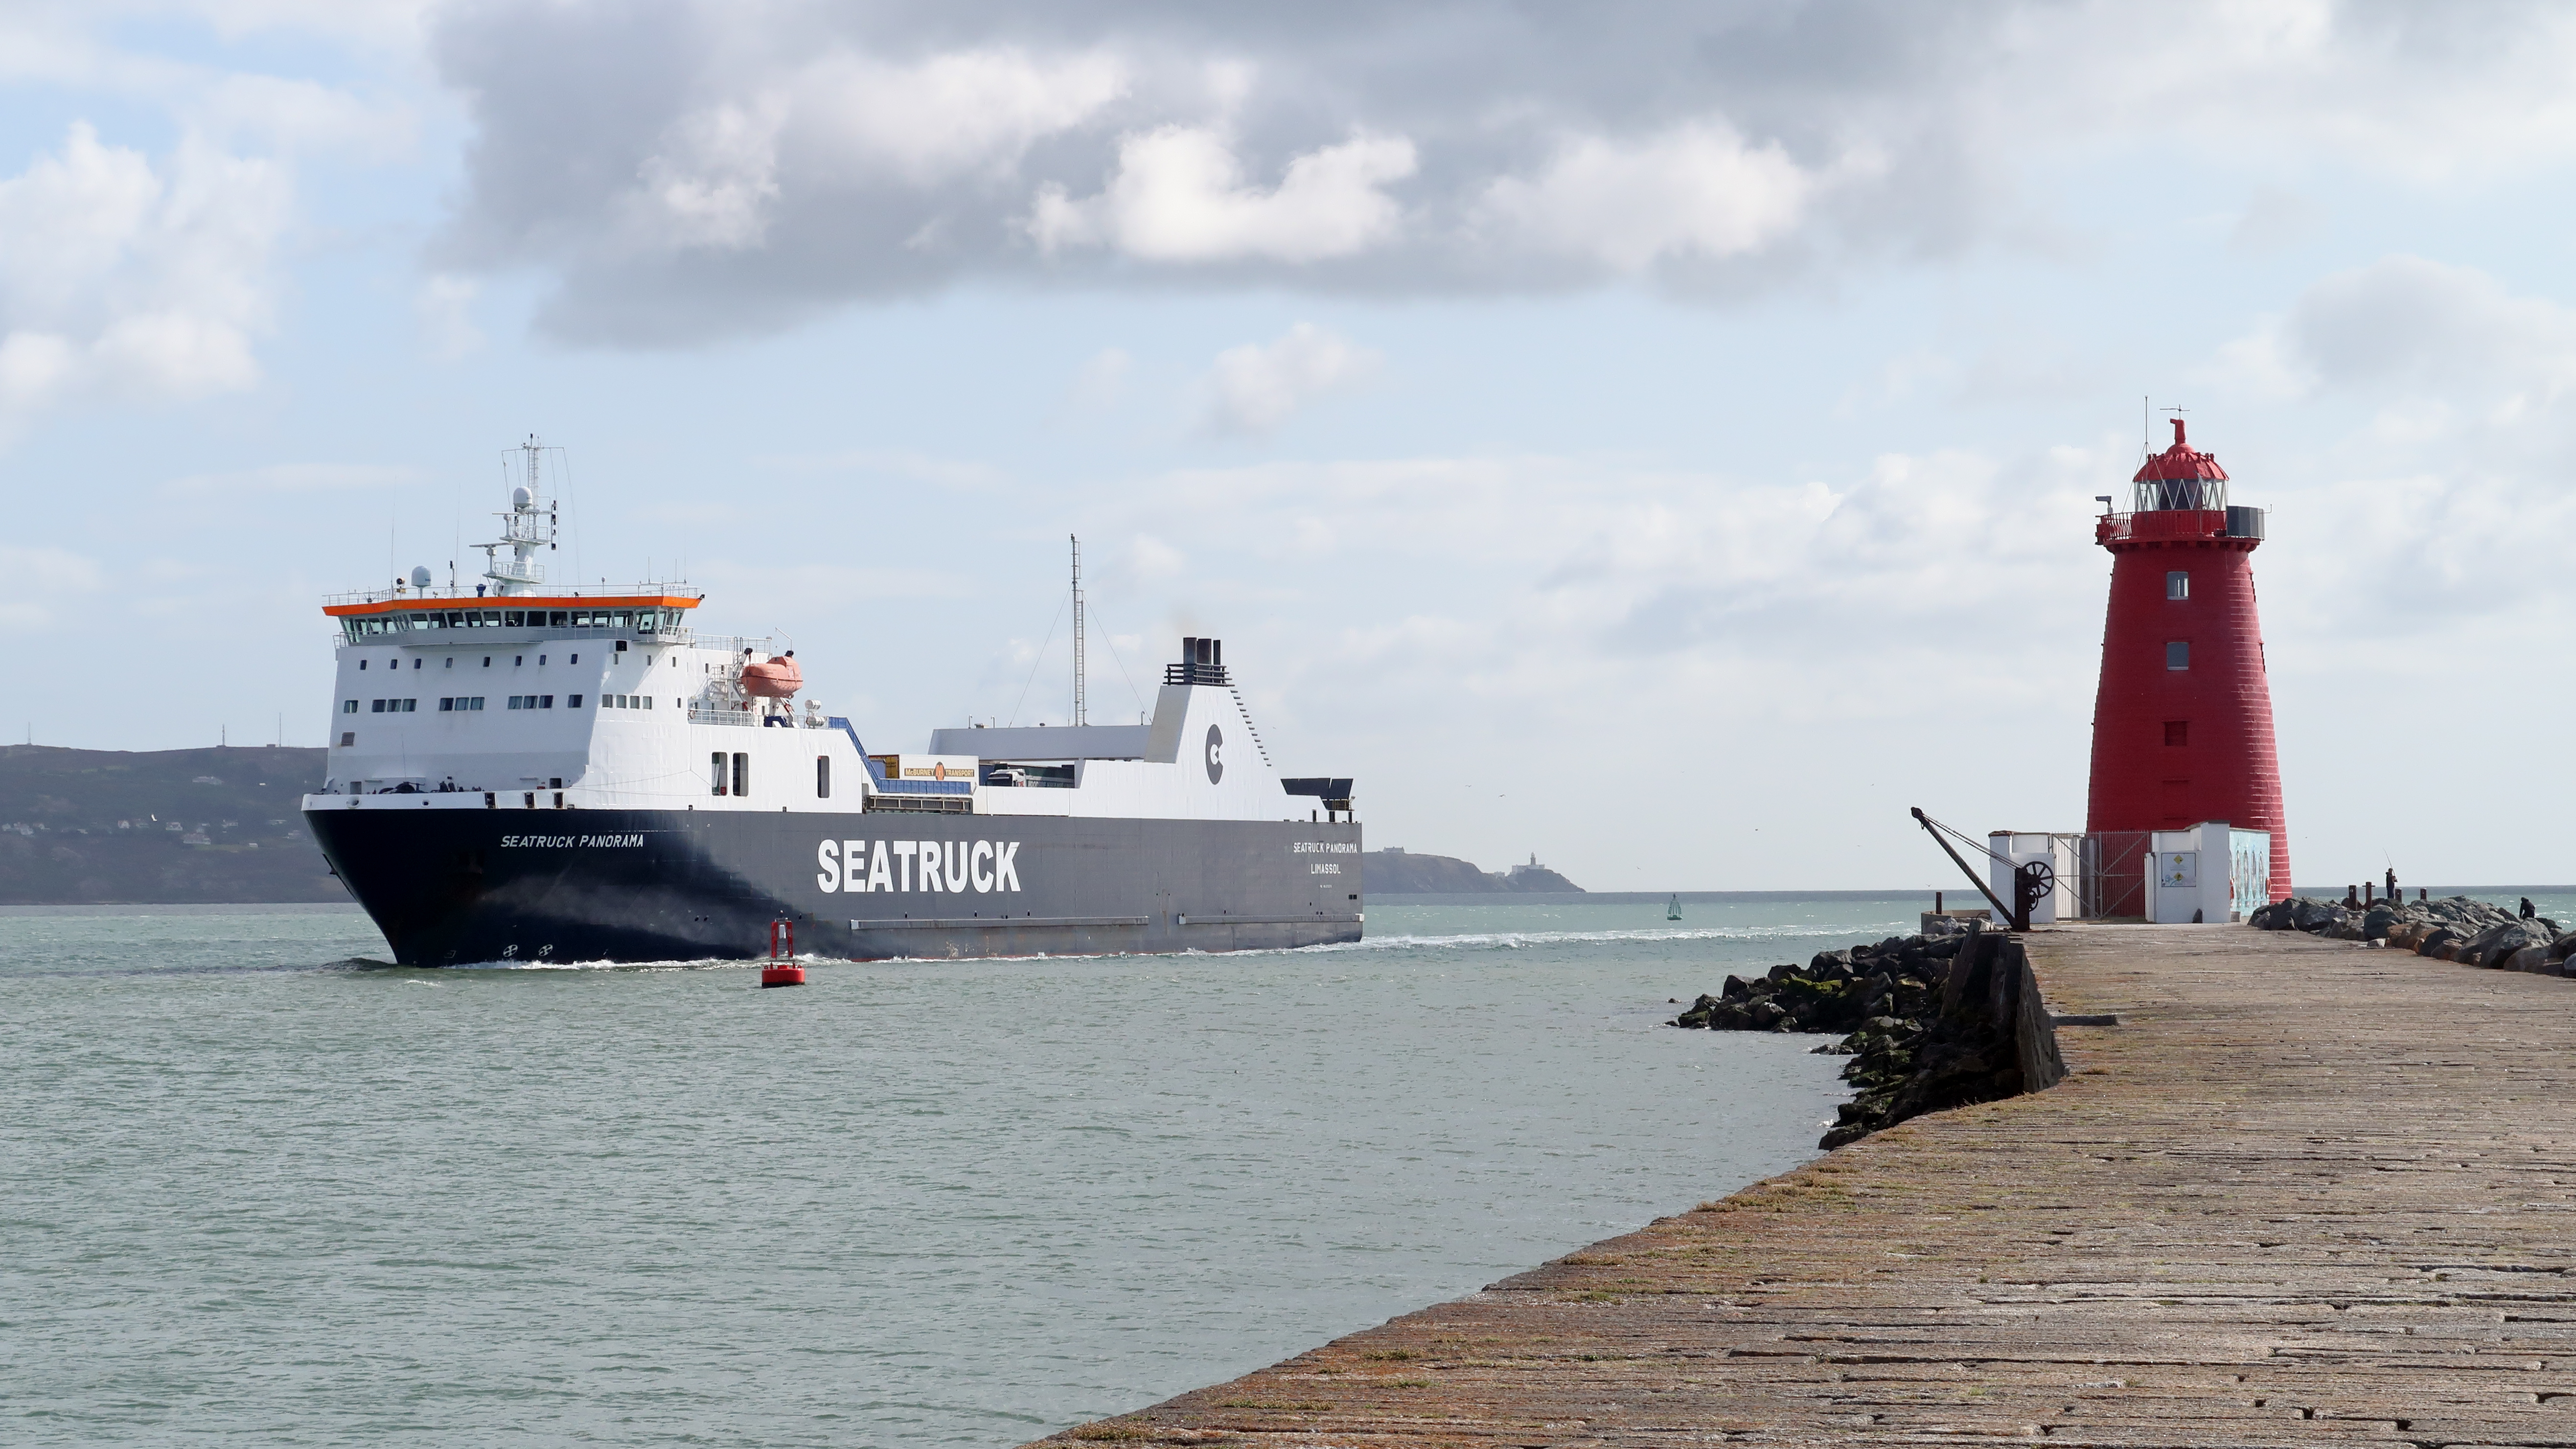 04 Seatruck comes into port